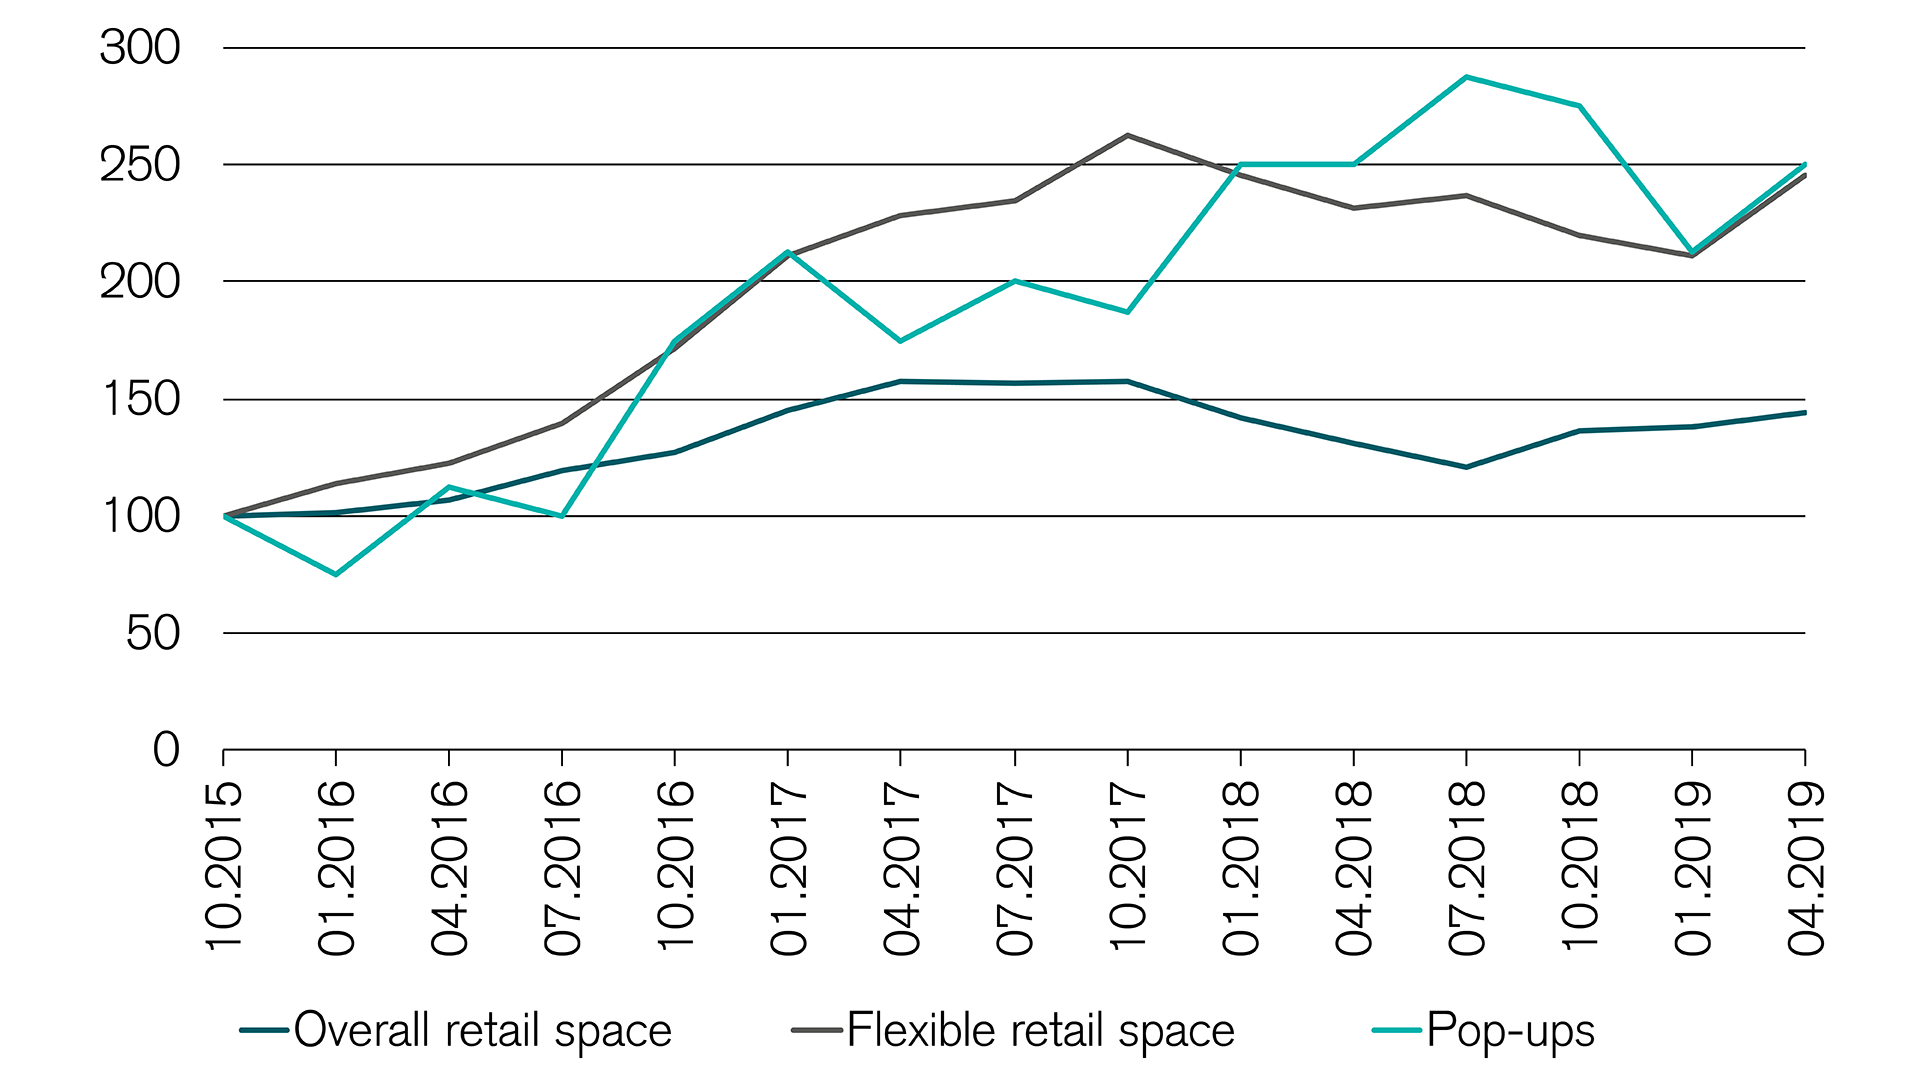 Share of flexible retail space and pop up stores rising sharply